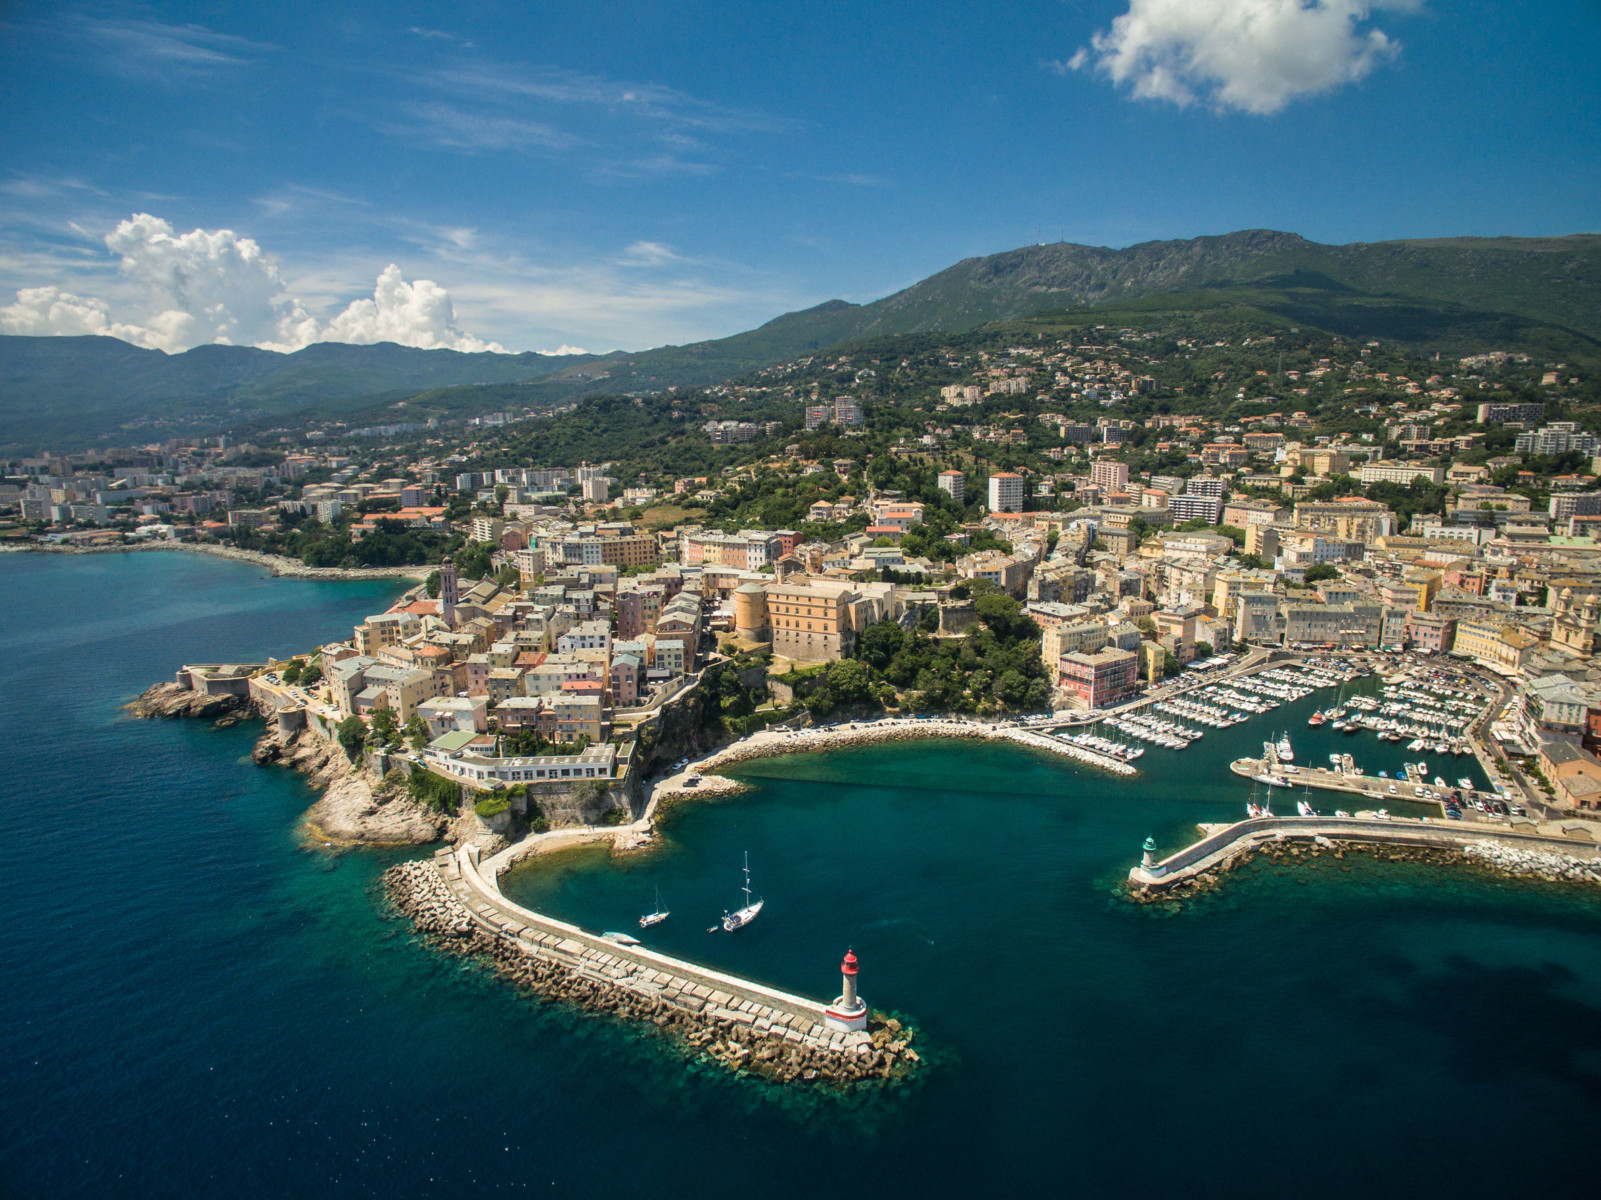 Bus Toulon Marseille Mice 5 Reasons To Choose Bastia For Your Professional Meetings